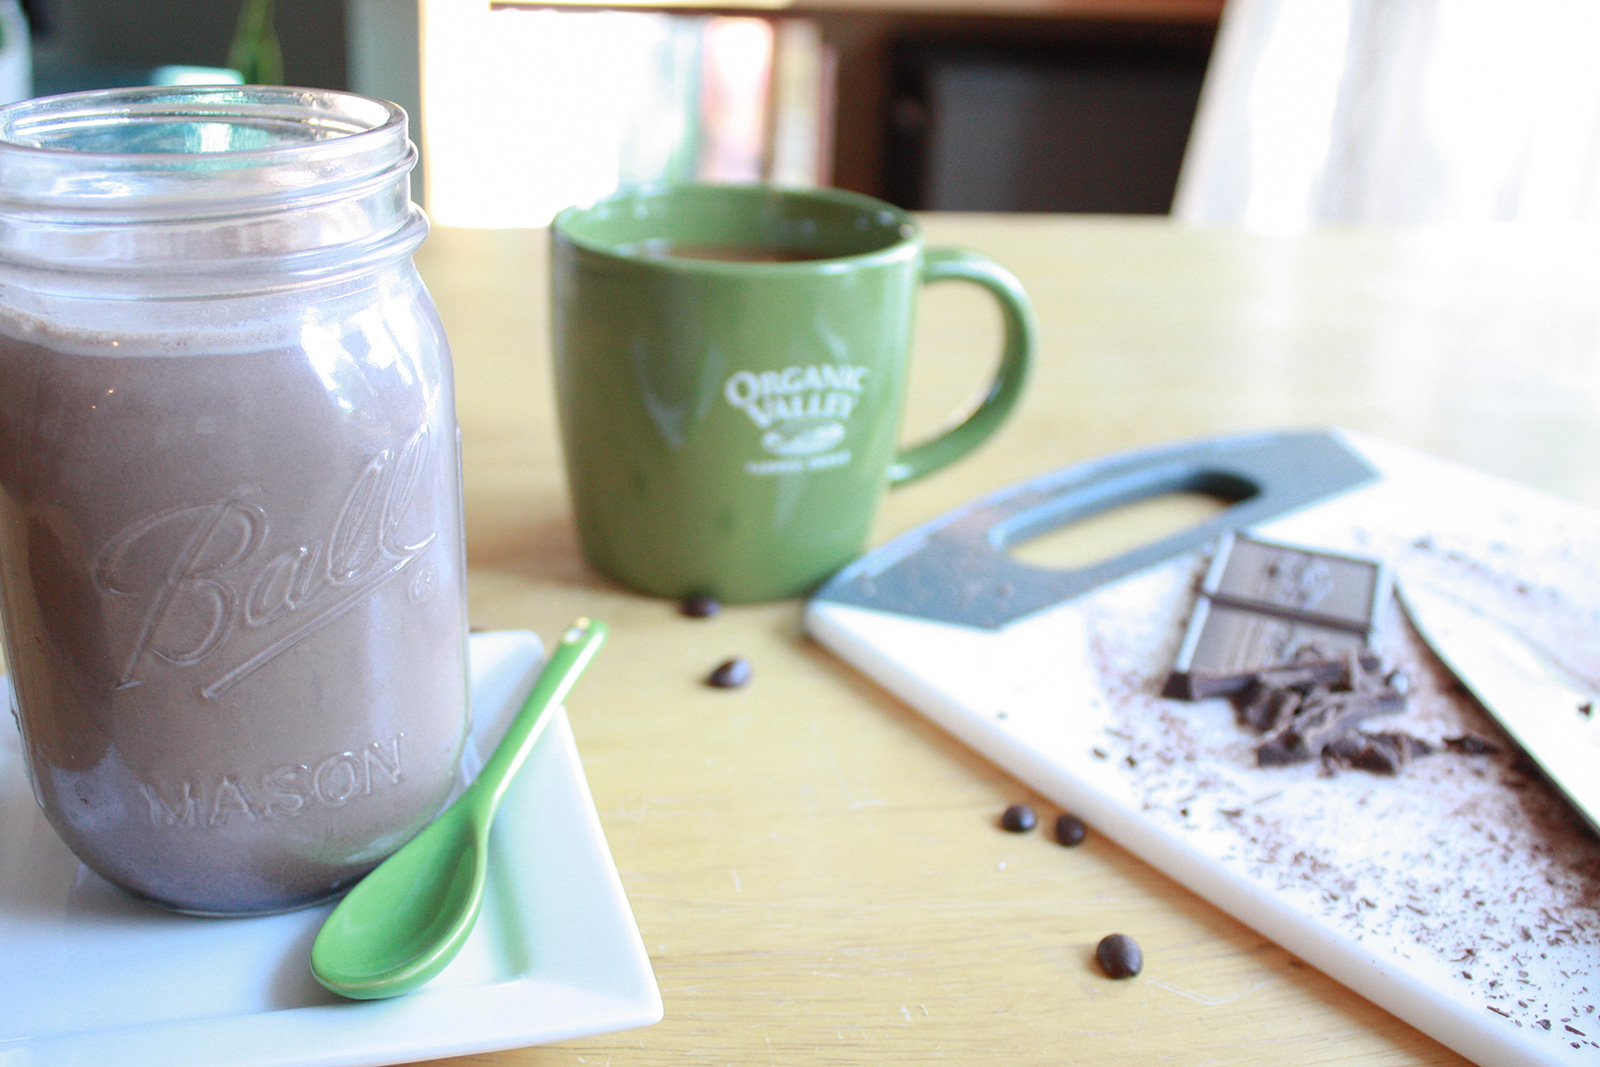 Homemade peppermint mocha coffee creamer in mason jar and green mug.